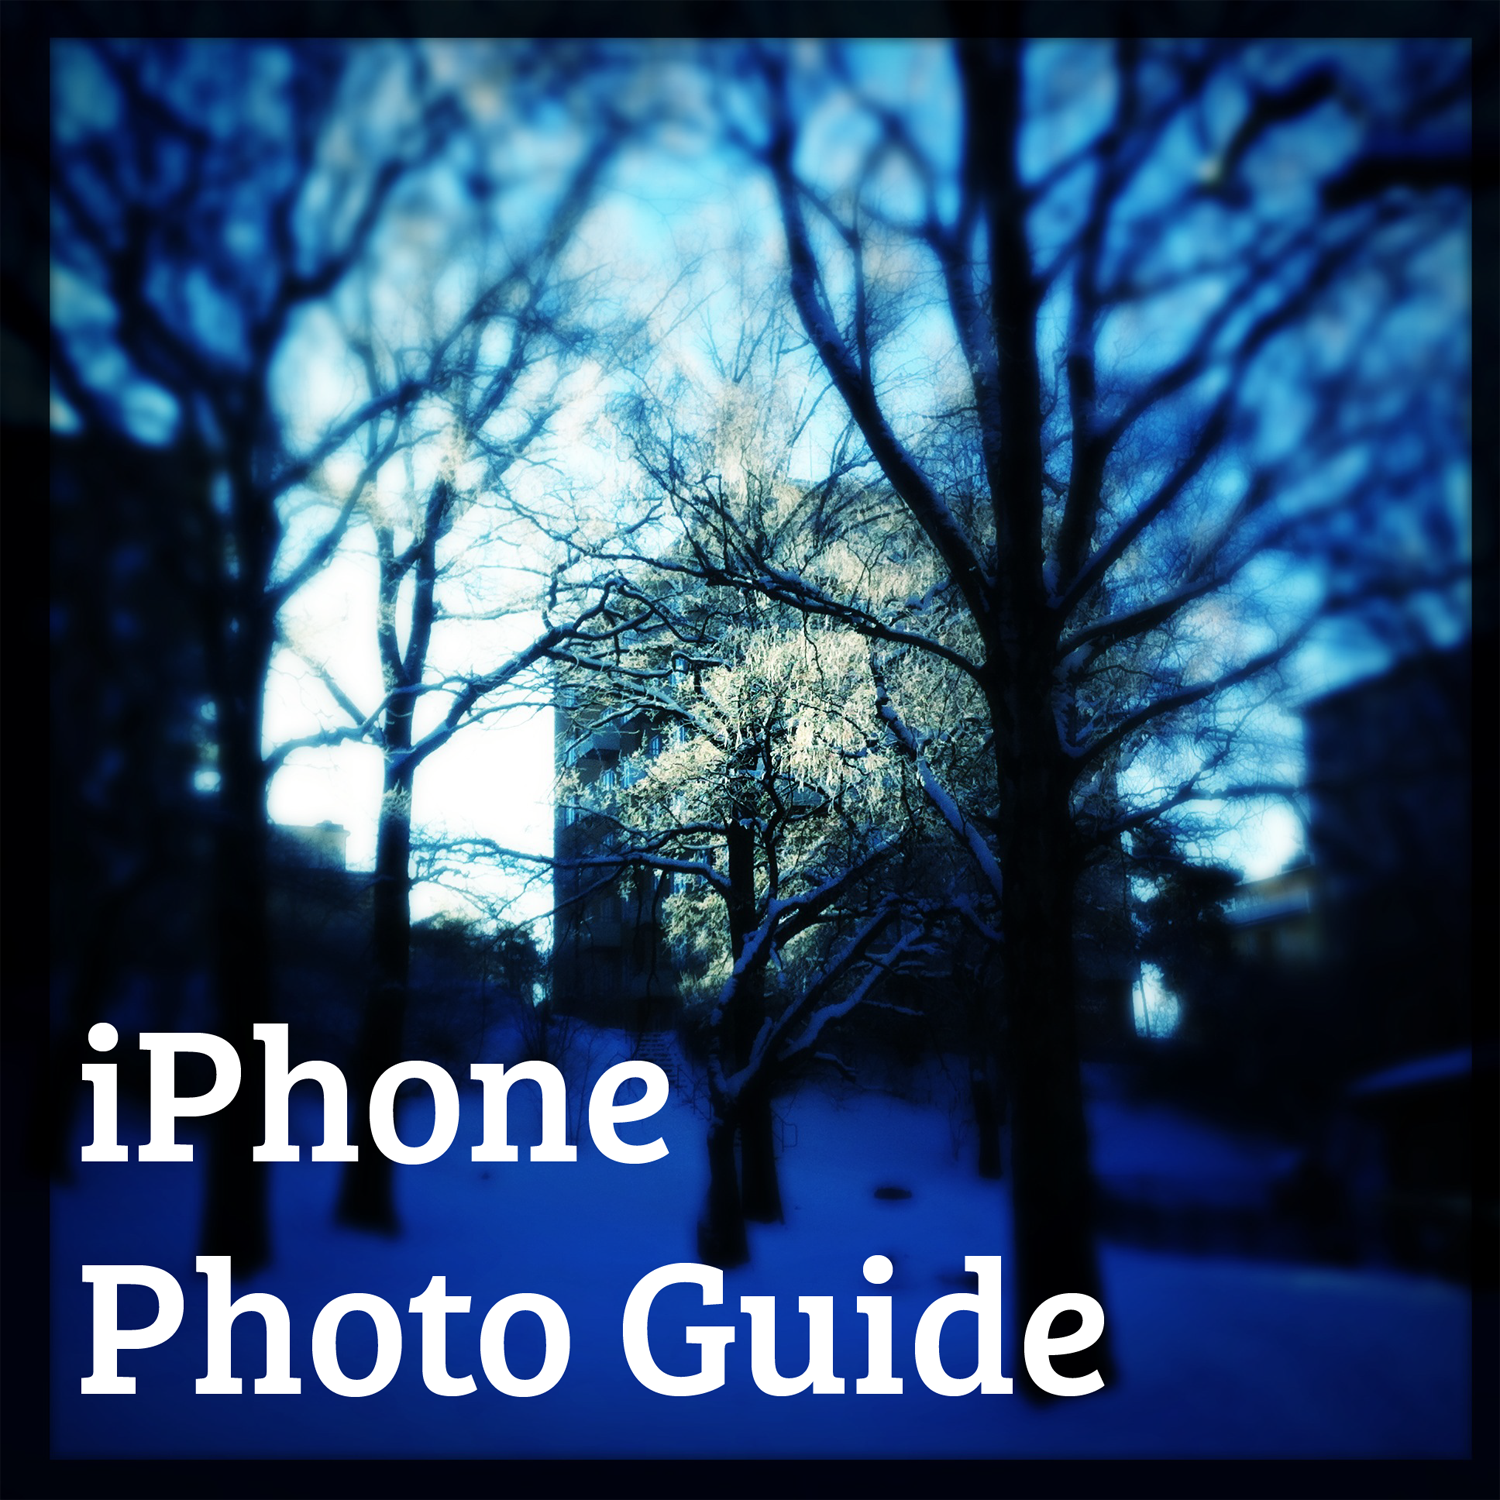 iPhone Photo Guide